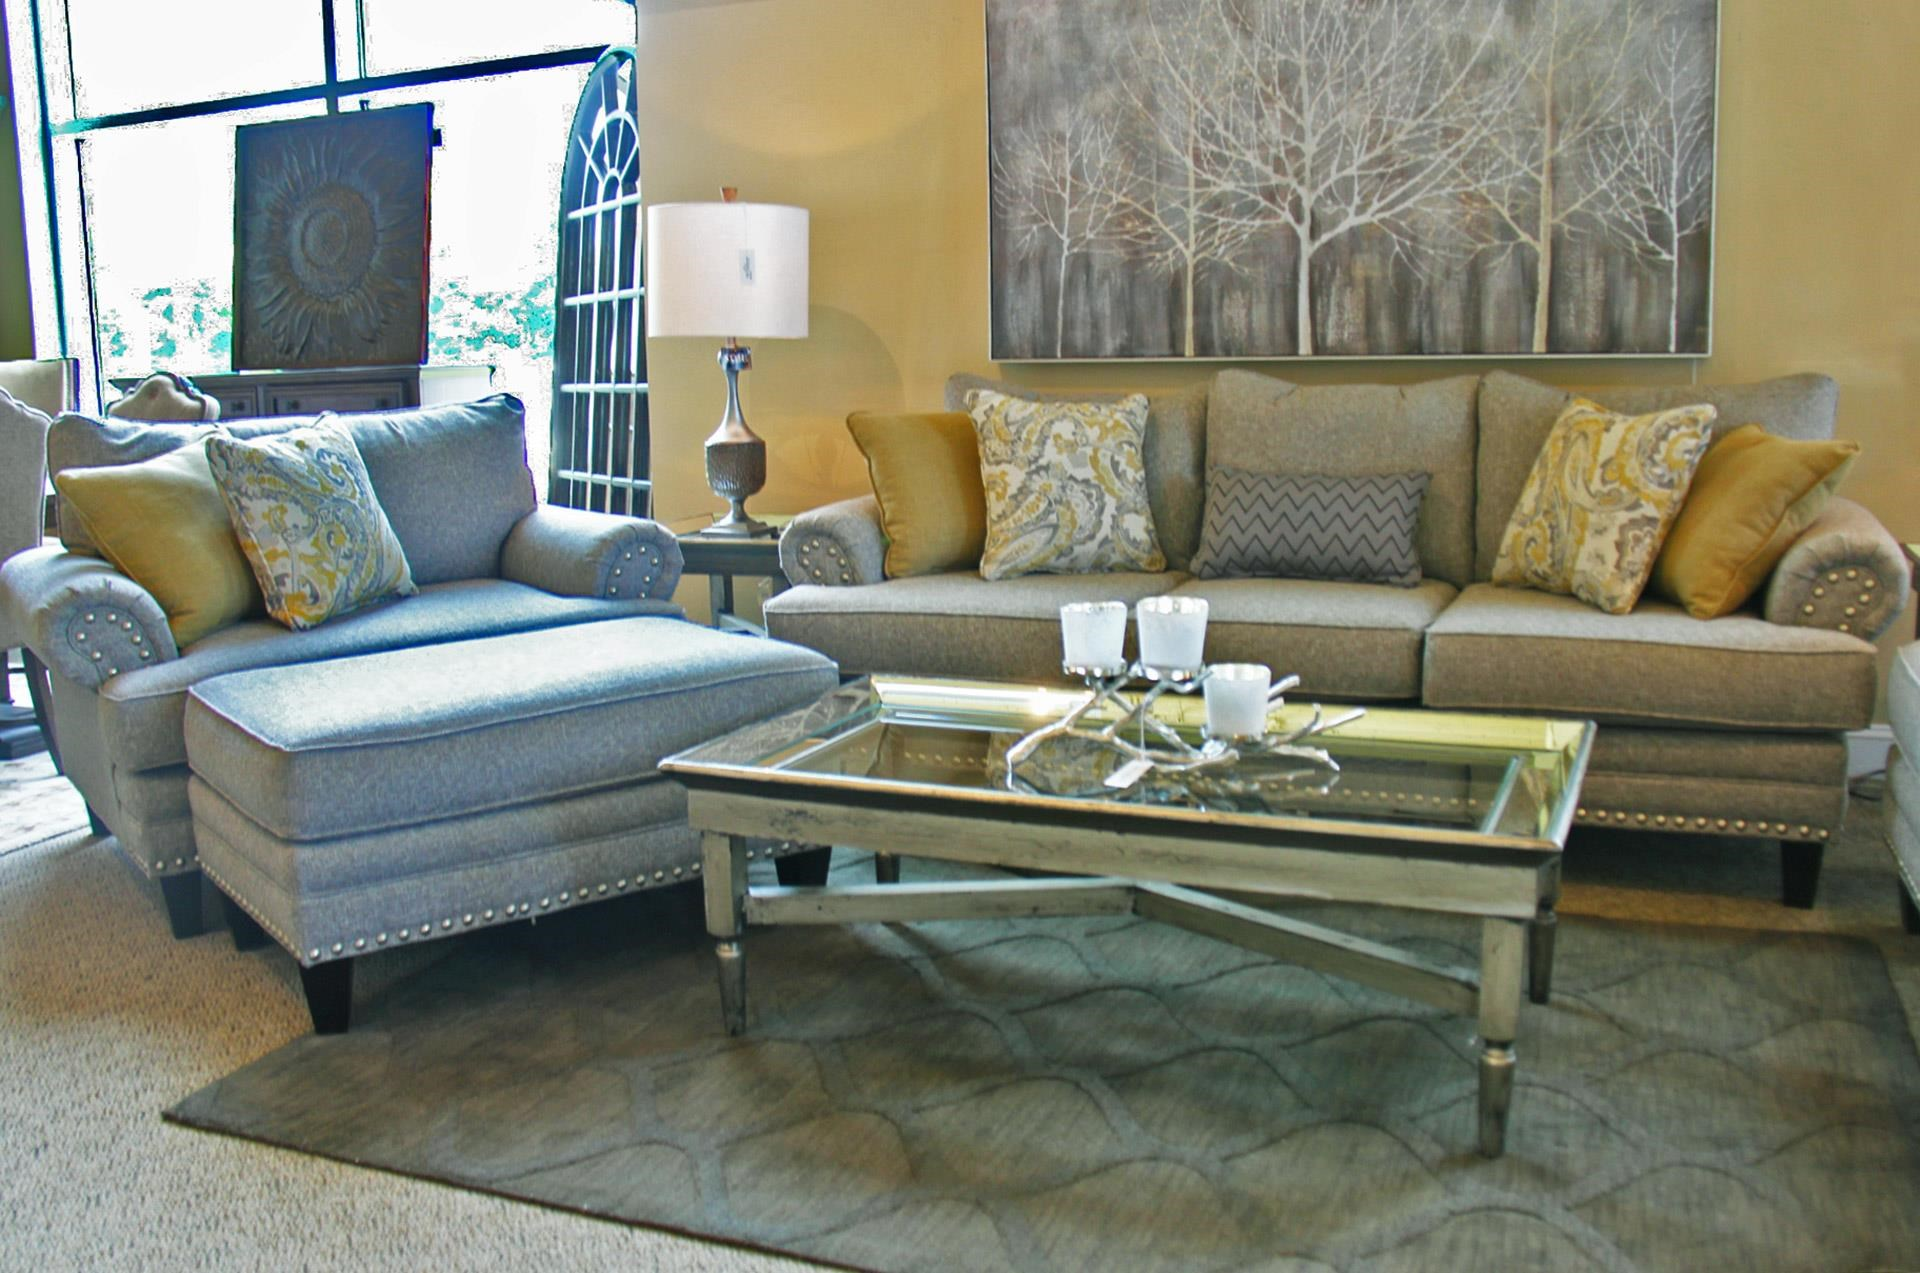 Fusion Furniture 2830 Sofa, Chair, and Ottoman - Item Number: GRP-283X-SCO